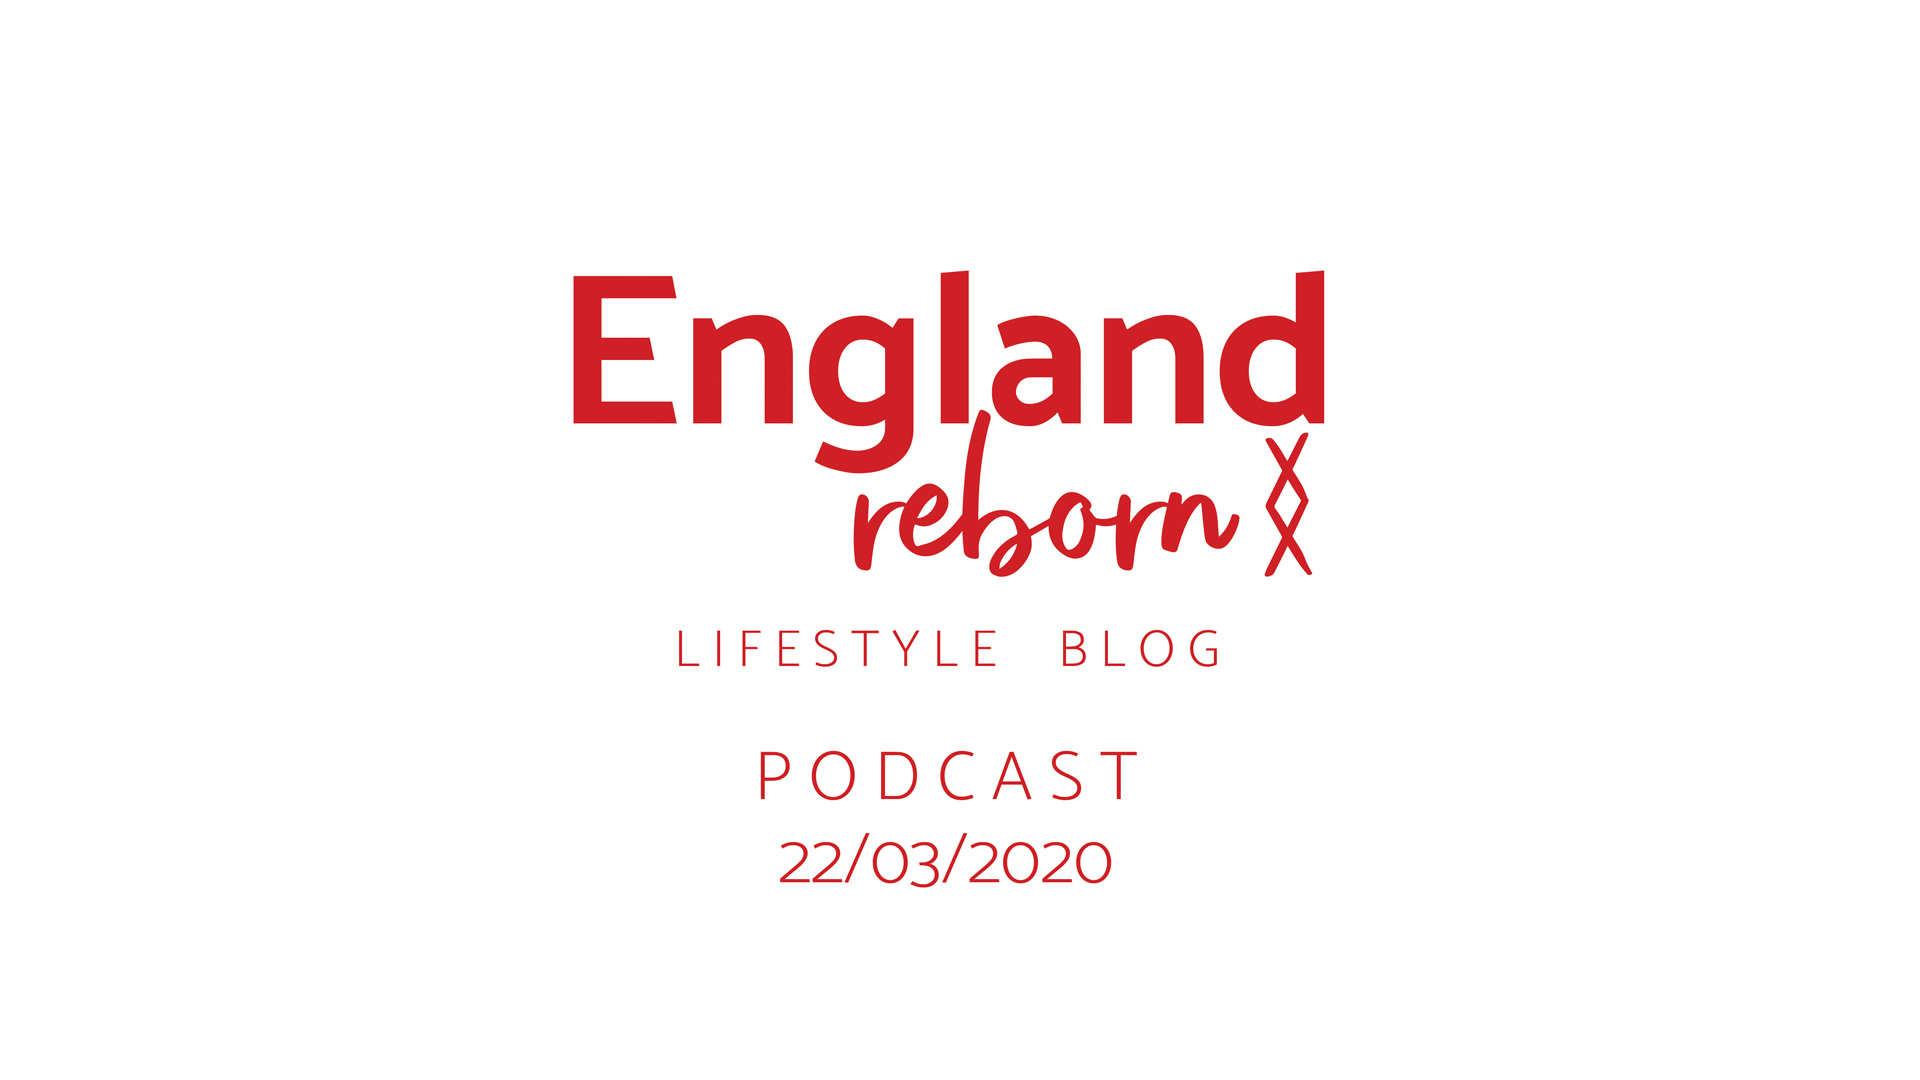 Podcast from England Reborn